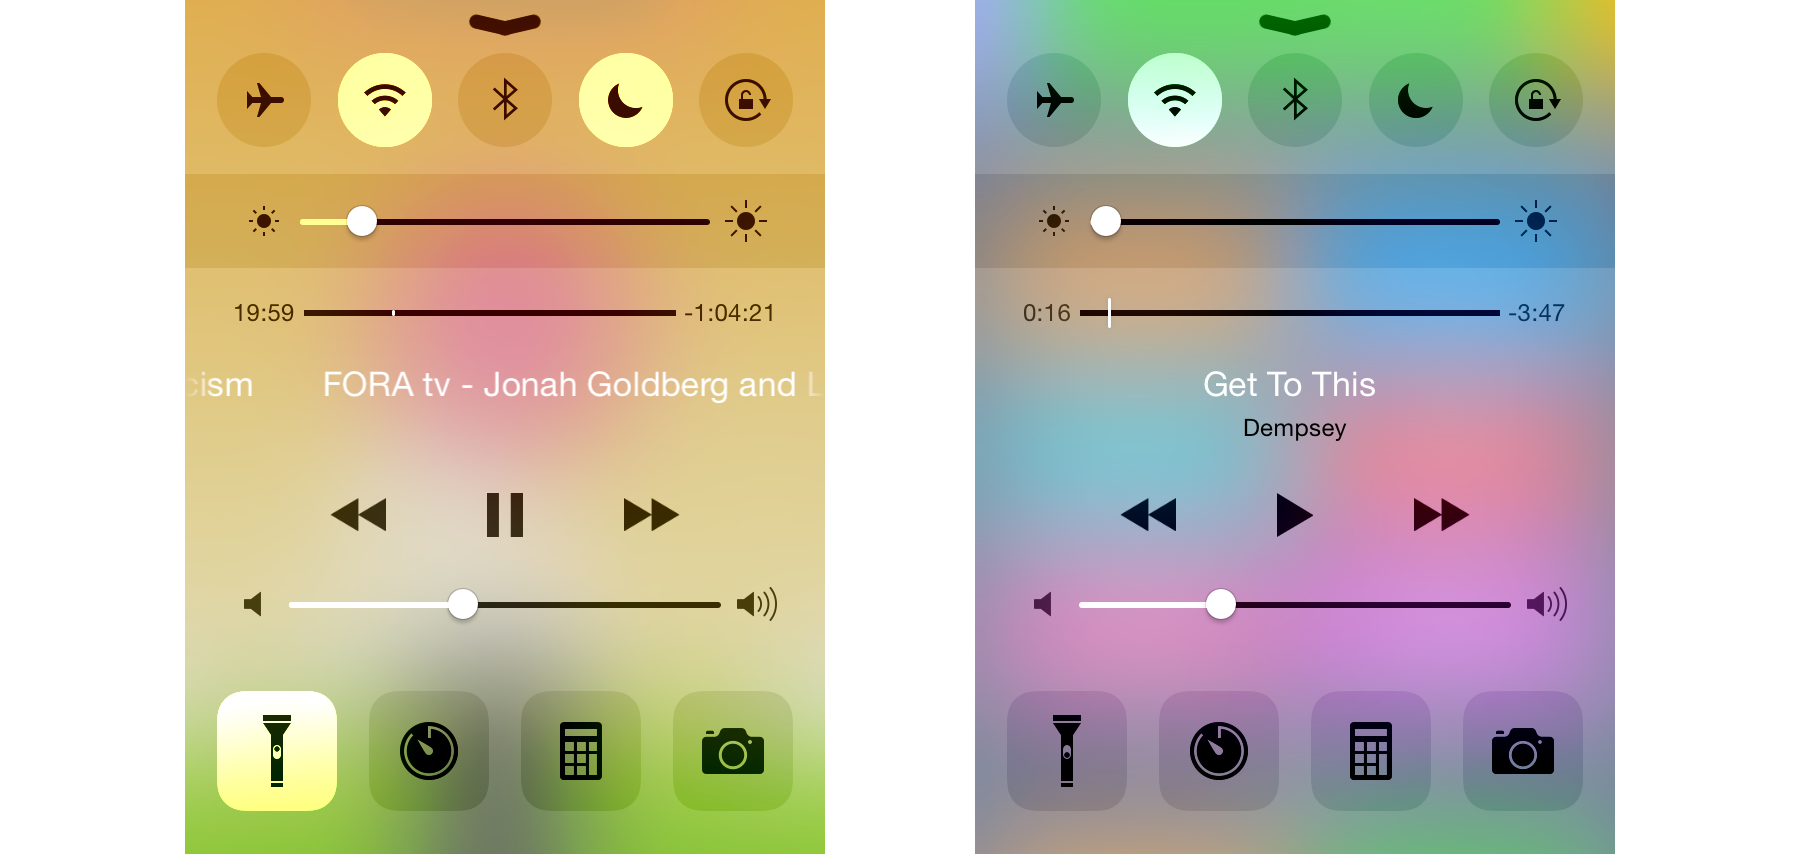 This is how colors are displayed on iOS.